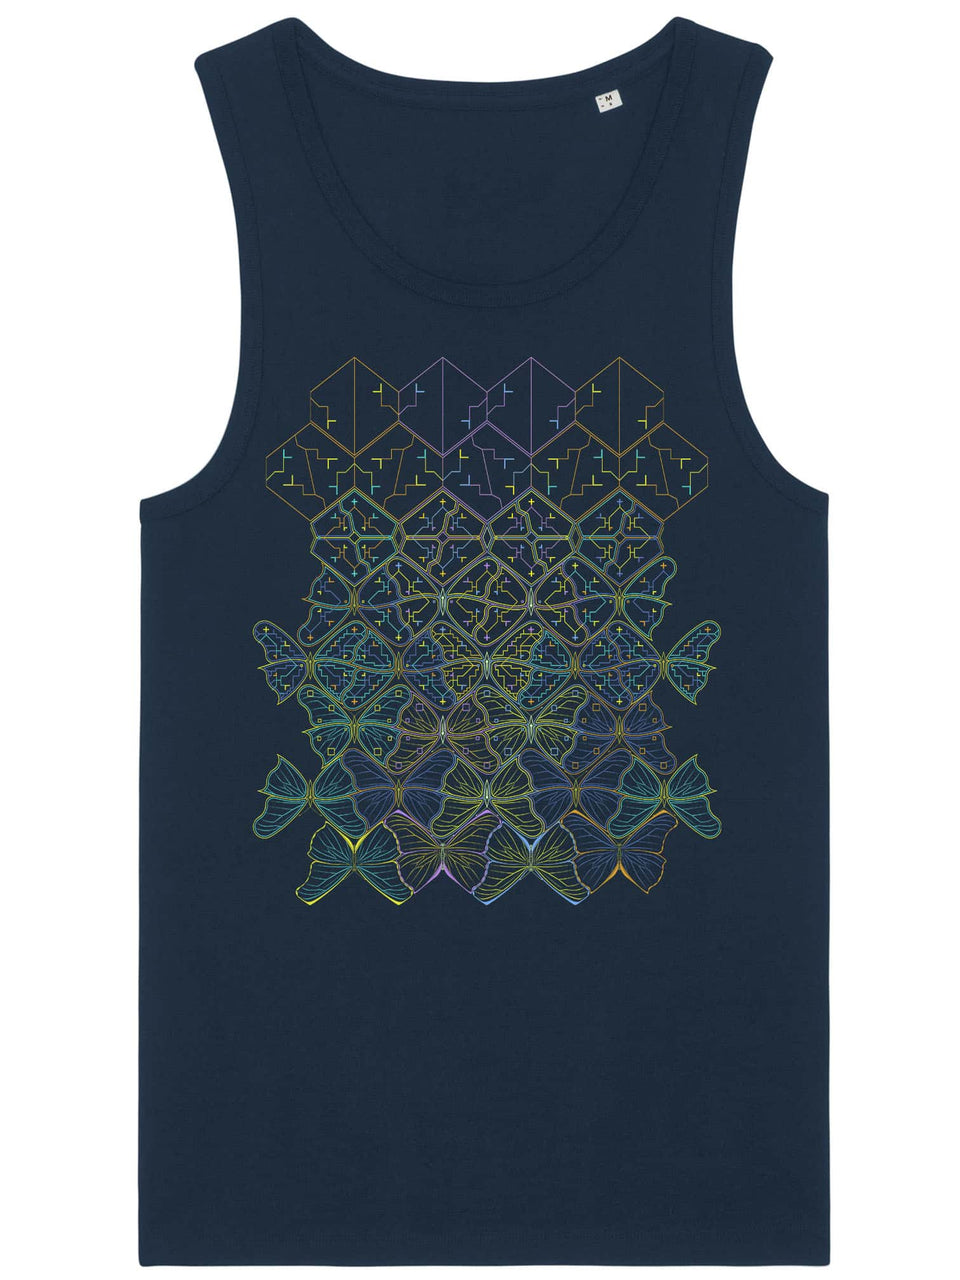 Butterfly Morph Made To Order Men Tank Top - Navy Blue